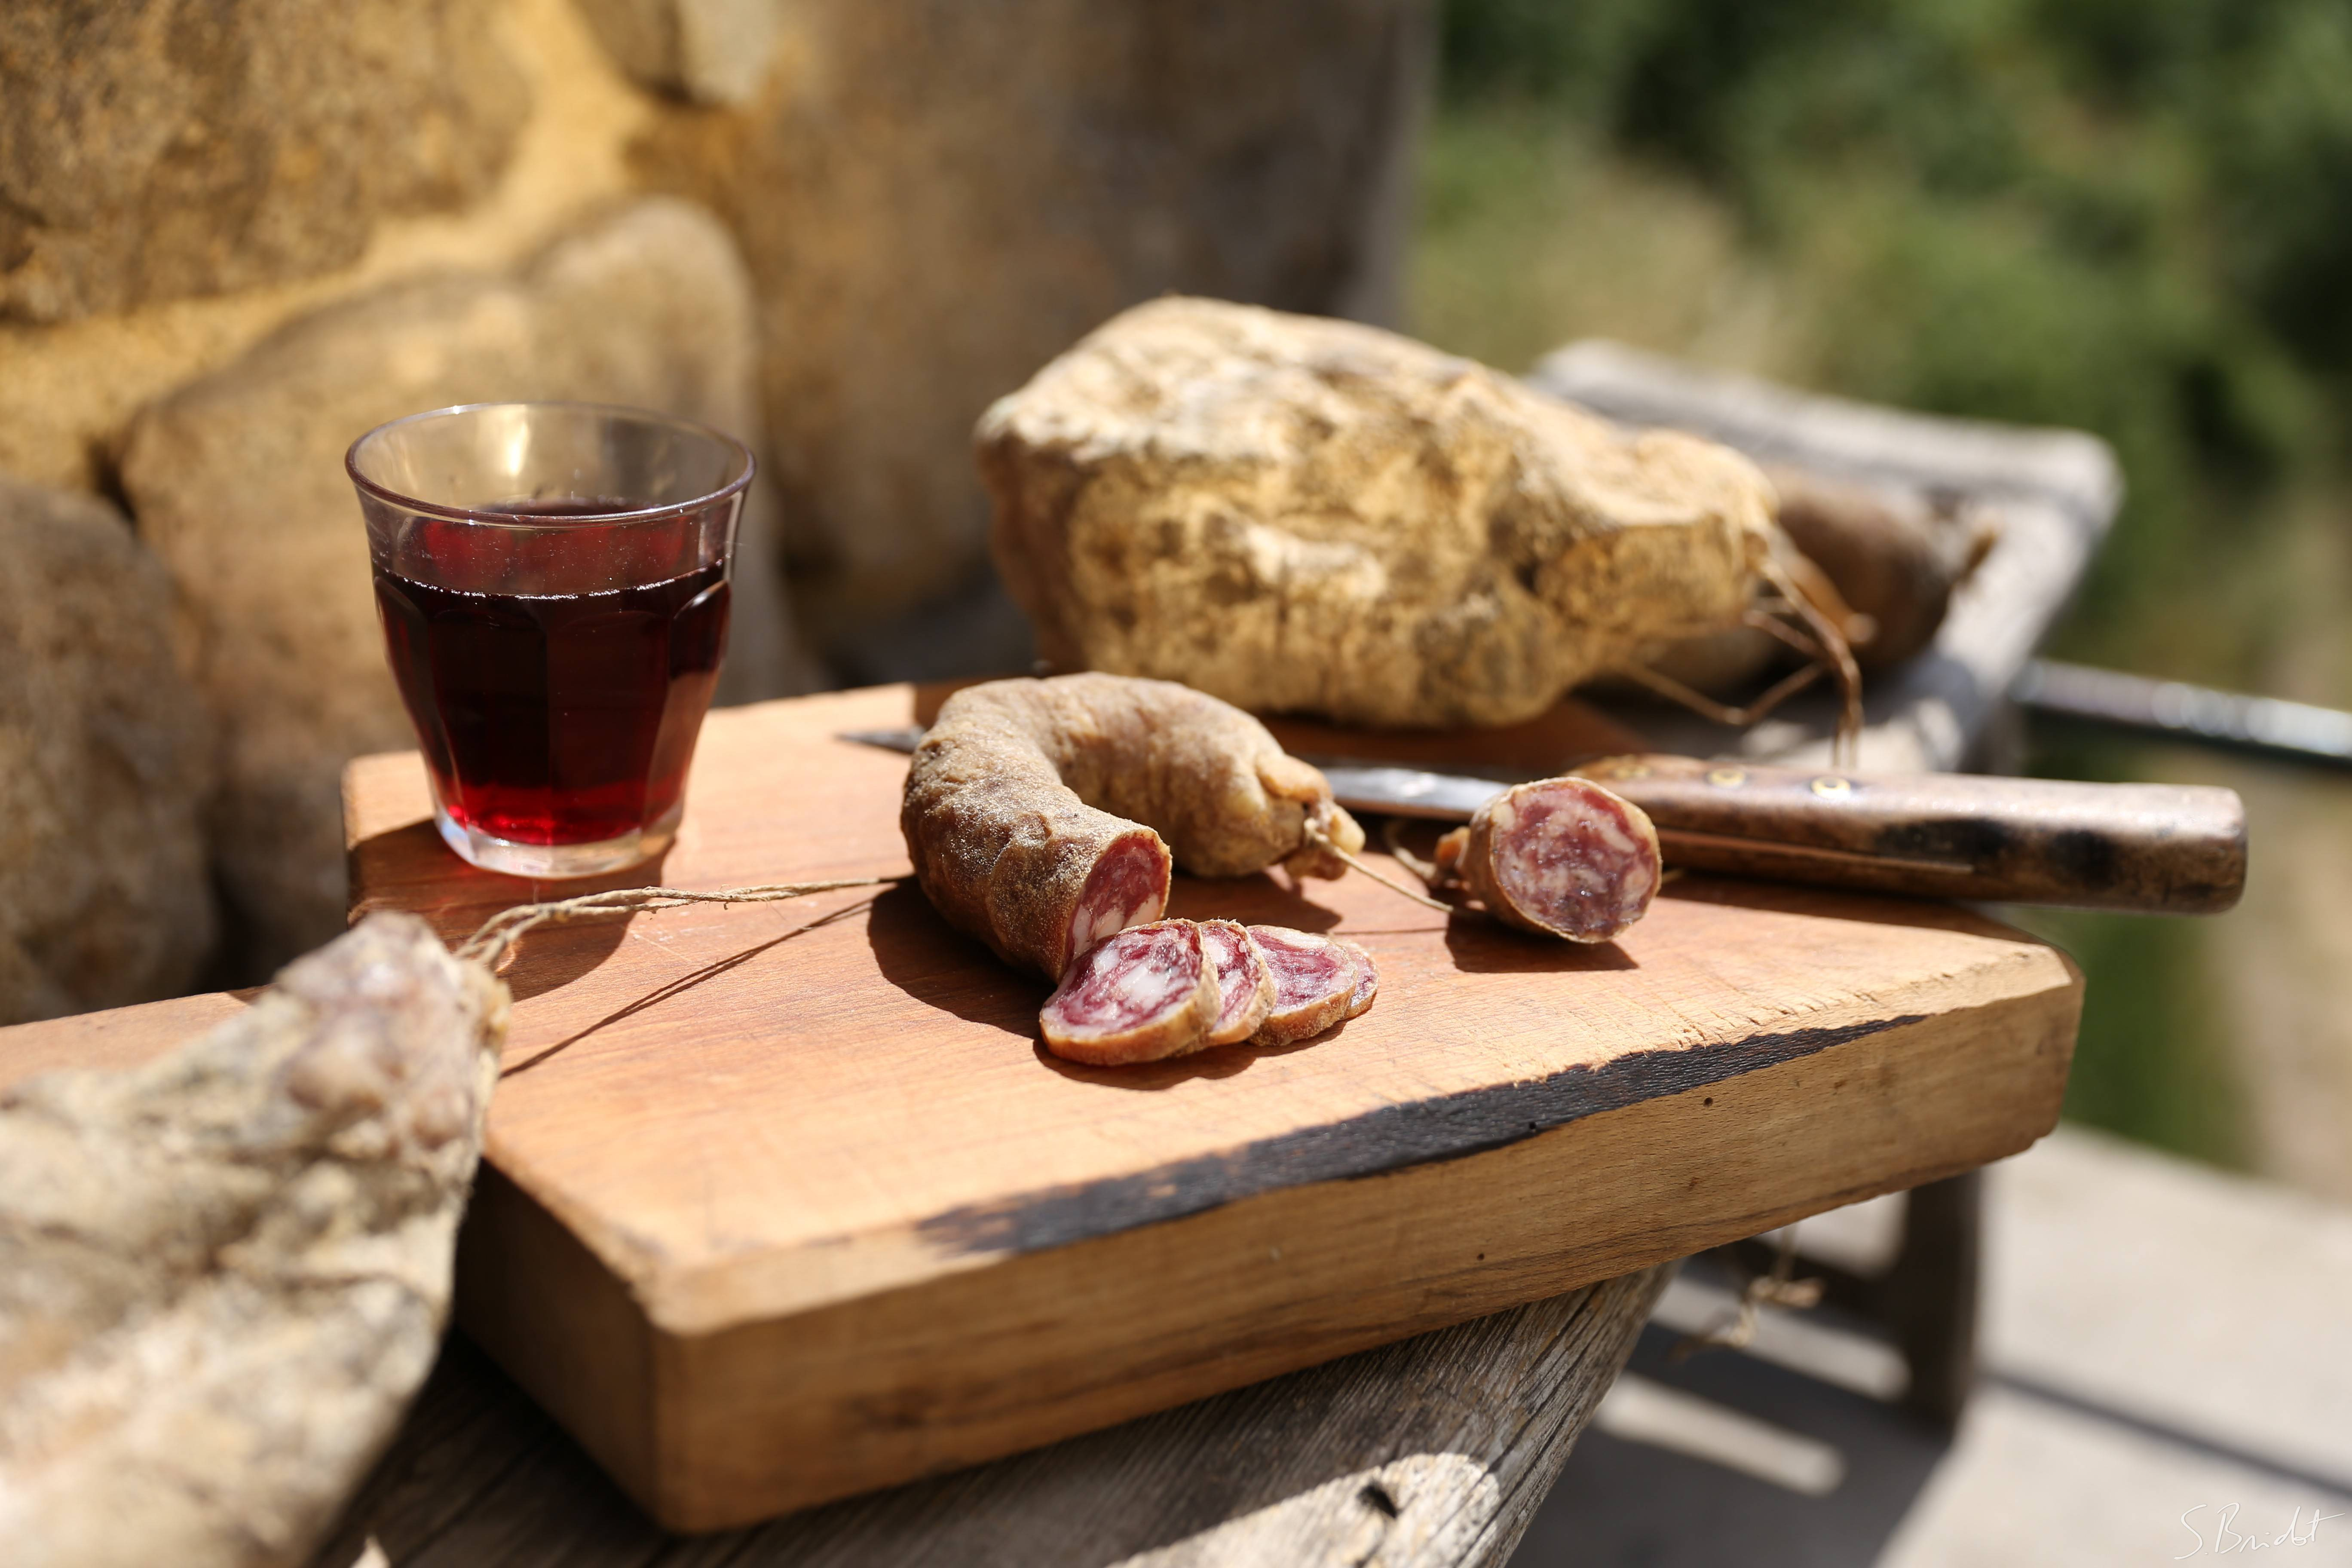 Sausage of Ardeche and glass of Saint Joseph